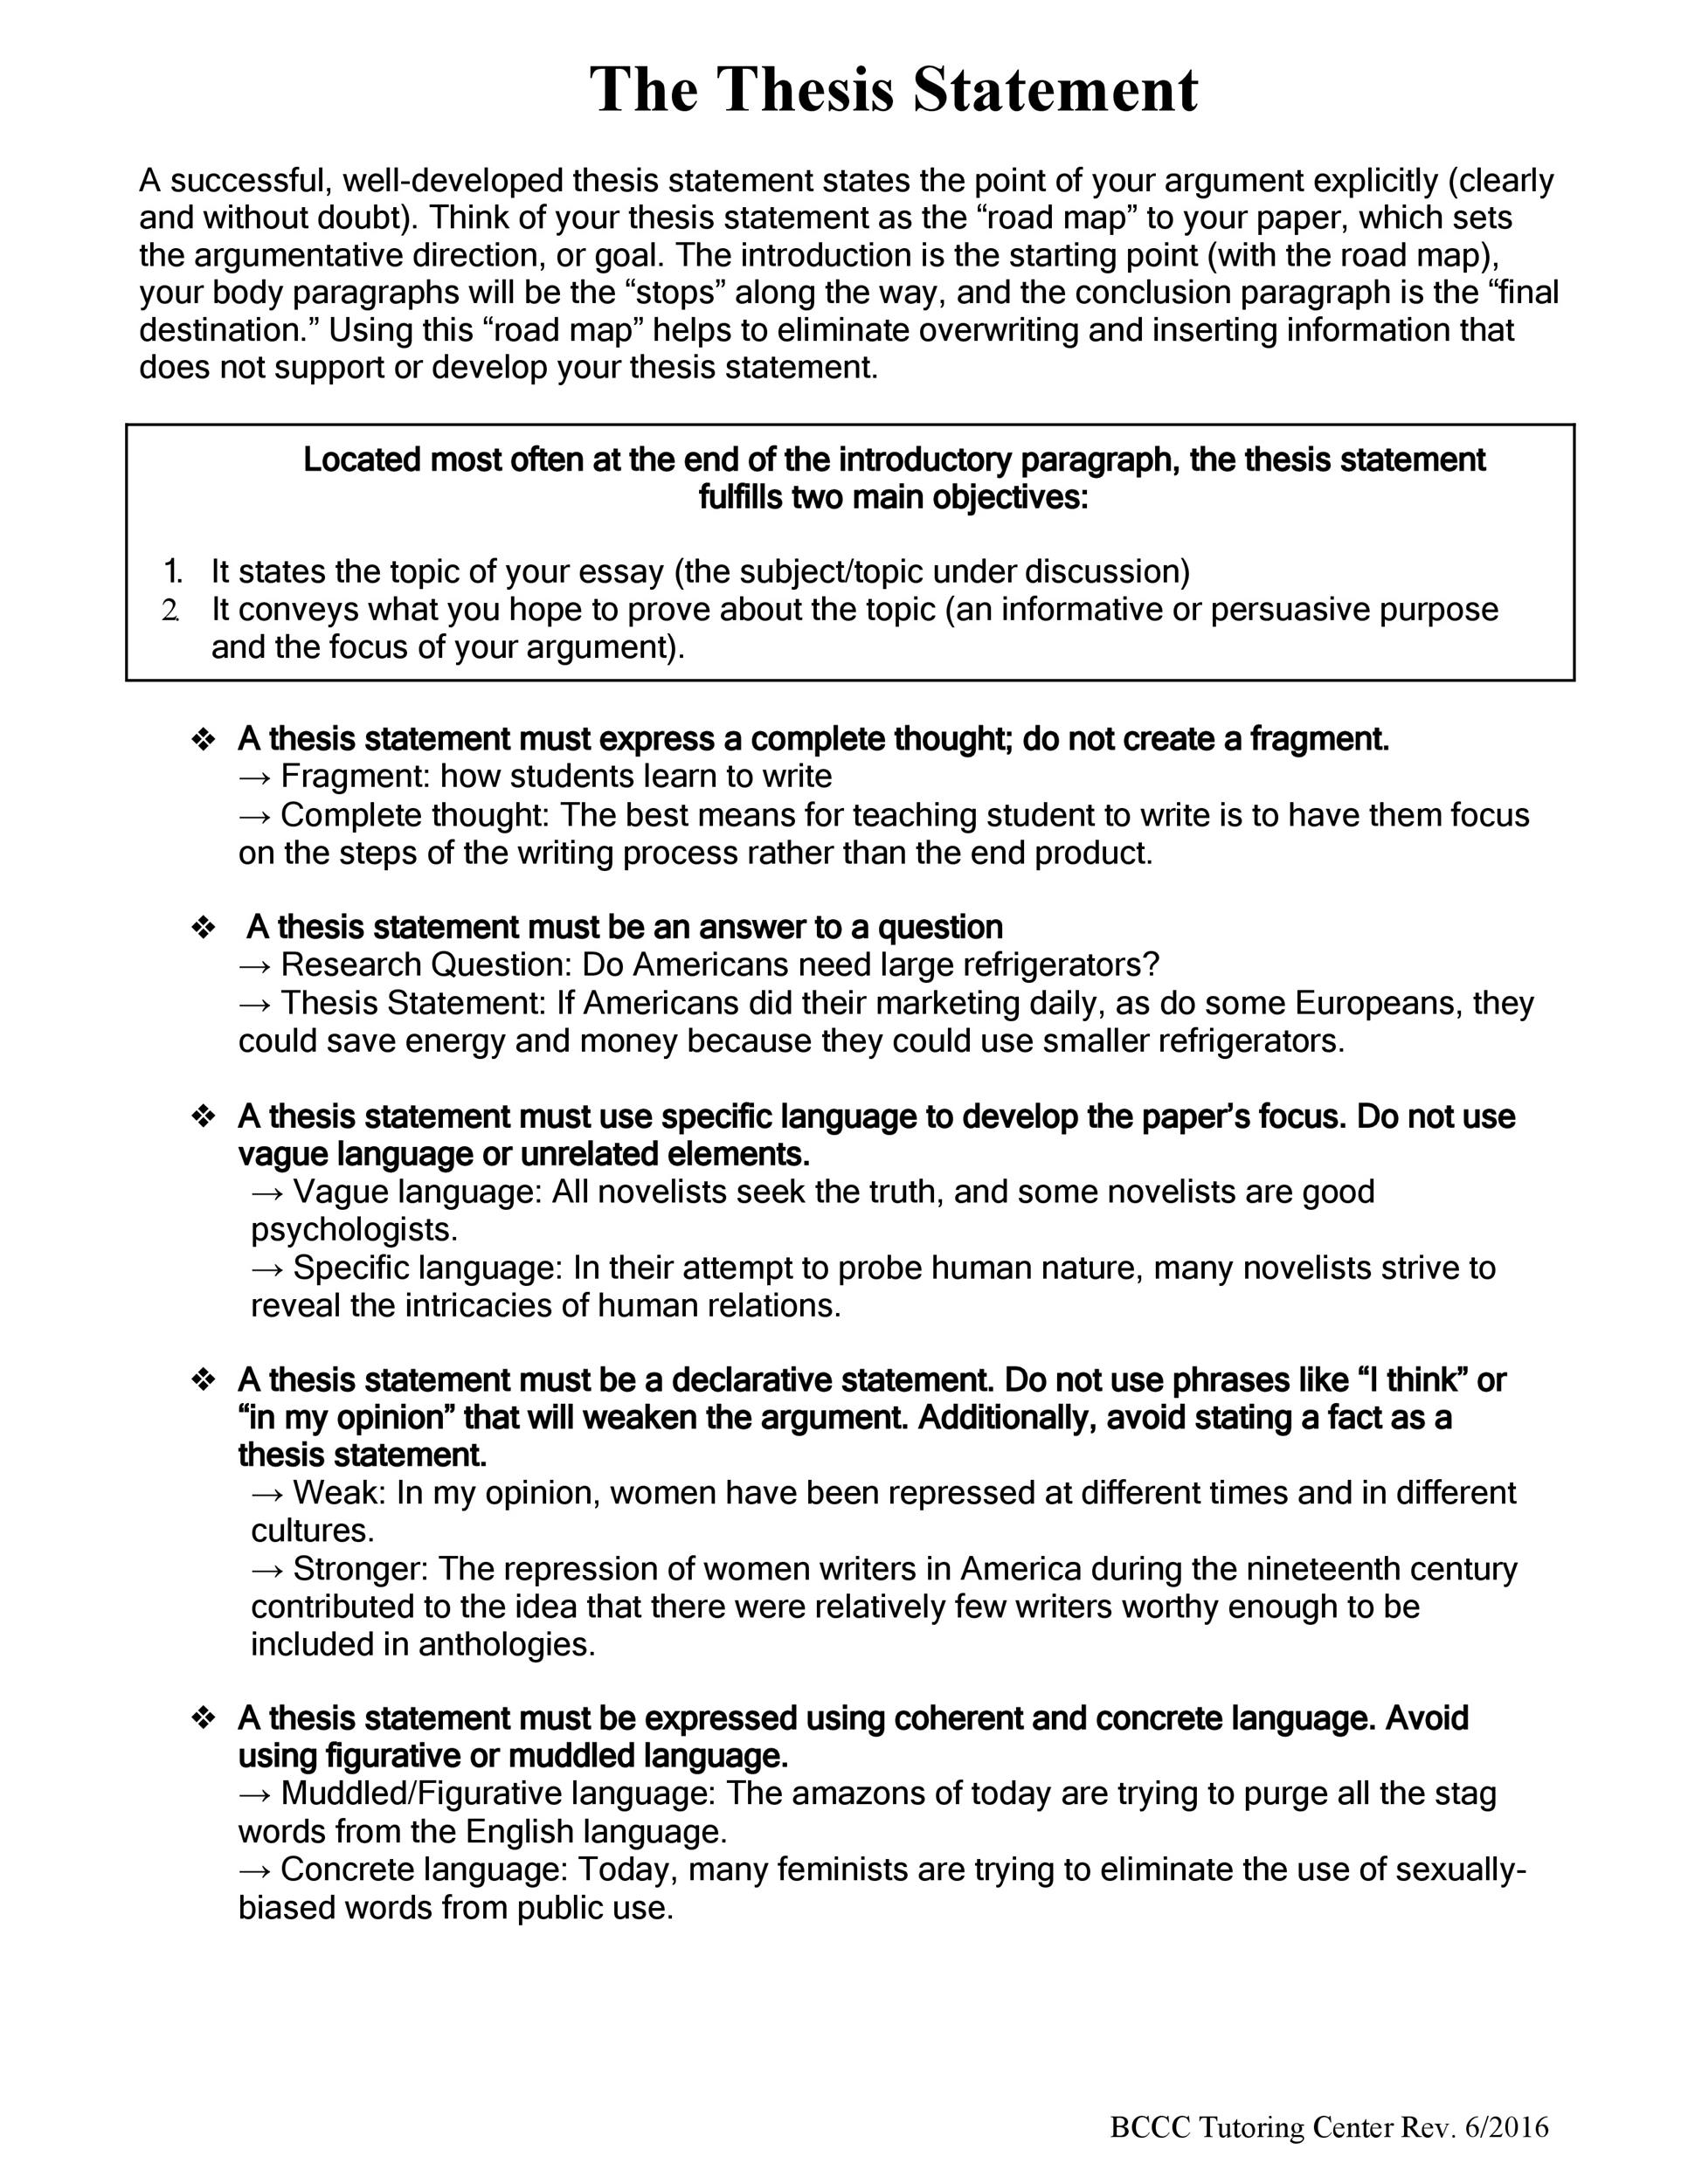 Free thesis statement template 33